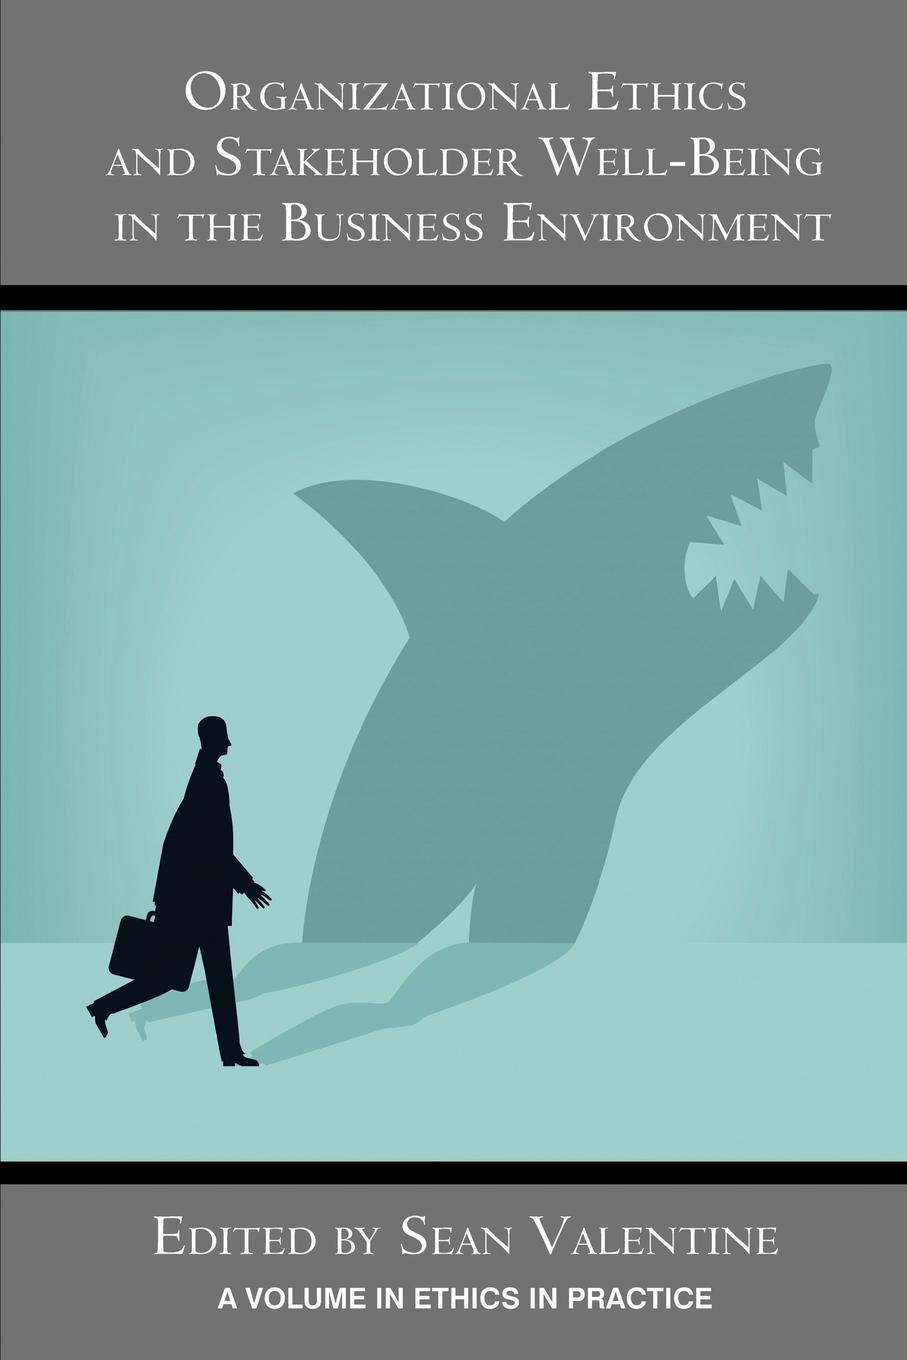 Organizational Ethics and Stakeholder Well-Being in the Business Environment hunt and vitell ethics model in analyzing monsanto case